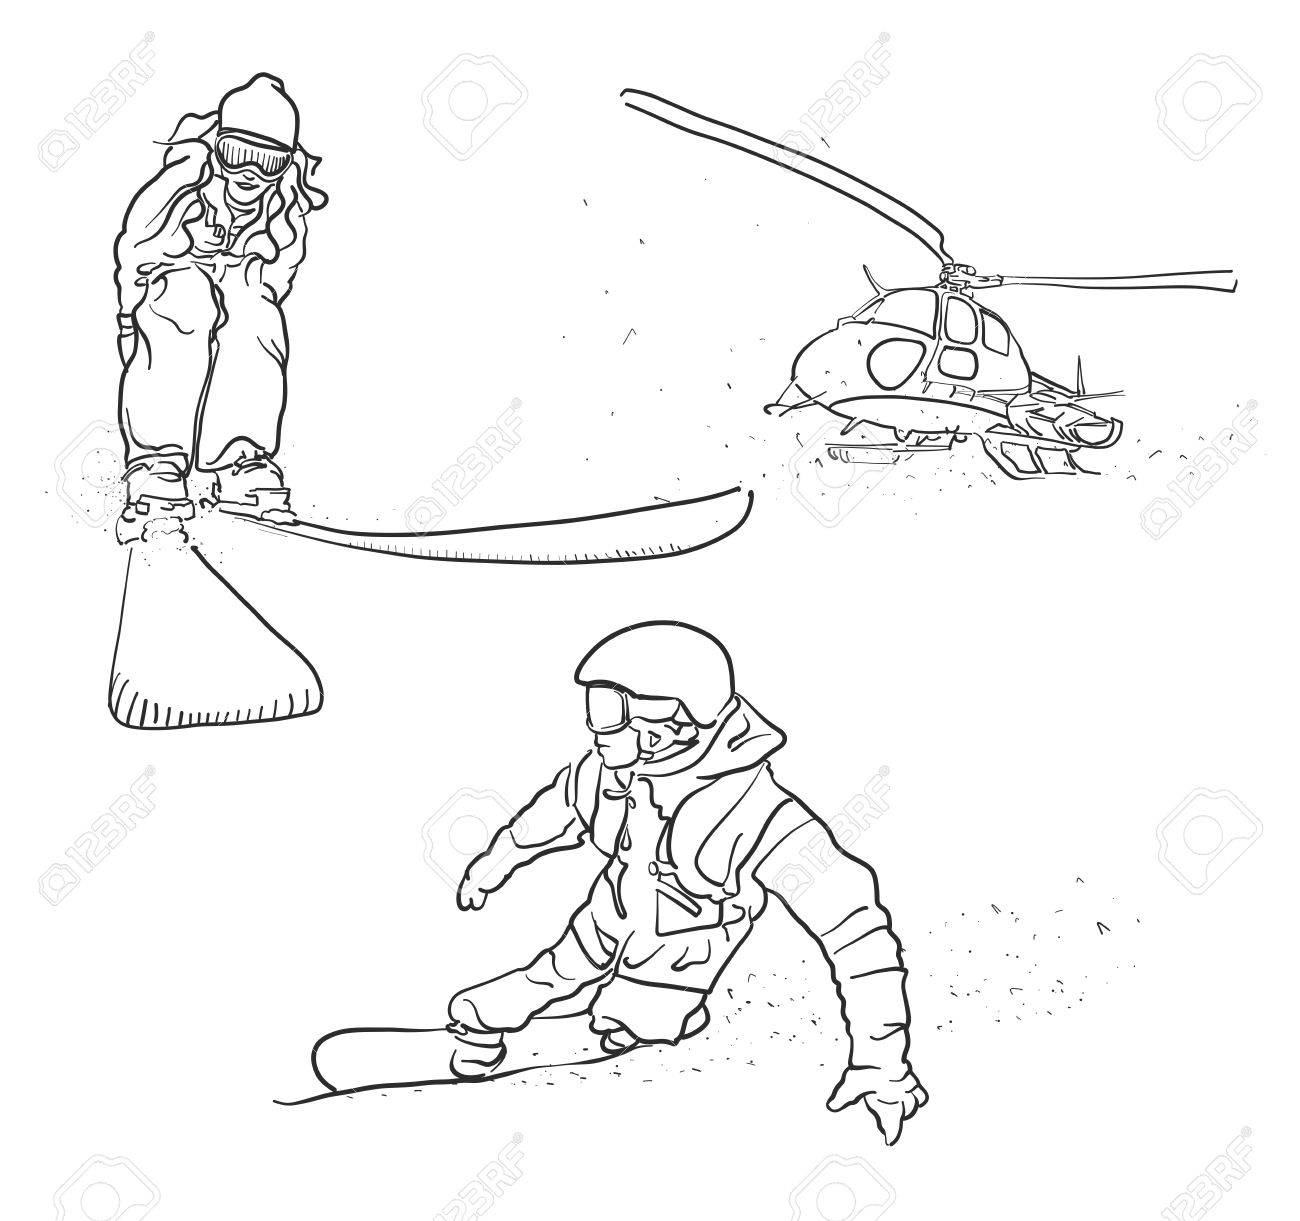 1300x1221 Skiing, Snowboarding And Helicopter Doodle Sketches, Hand Drawn